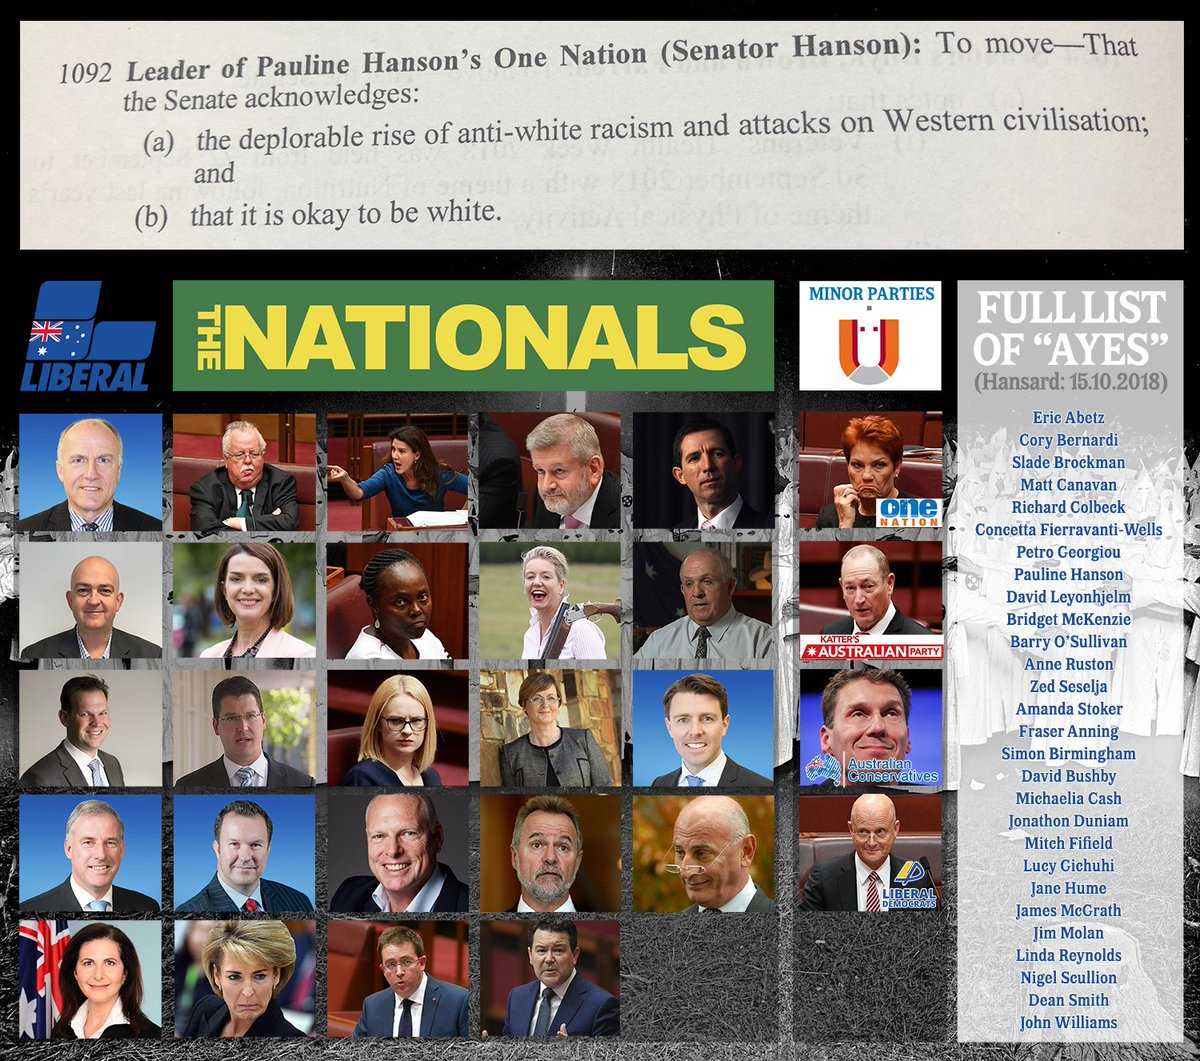 Here is the FULL LIST (photos and names) of the Liberals/minor party MP&#39;s who felt so persecuted, they sided with One Nation and Frasier &quot;final solution&quot; Anning on the &quot;It is OK to be white&quot; motion. PLEASE RT so everyone knows who they are. #AusPol<br>http://pic.twitter.com/4X1i2xoWcy